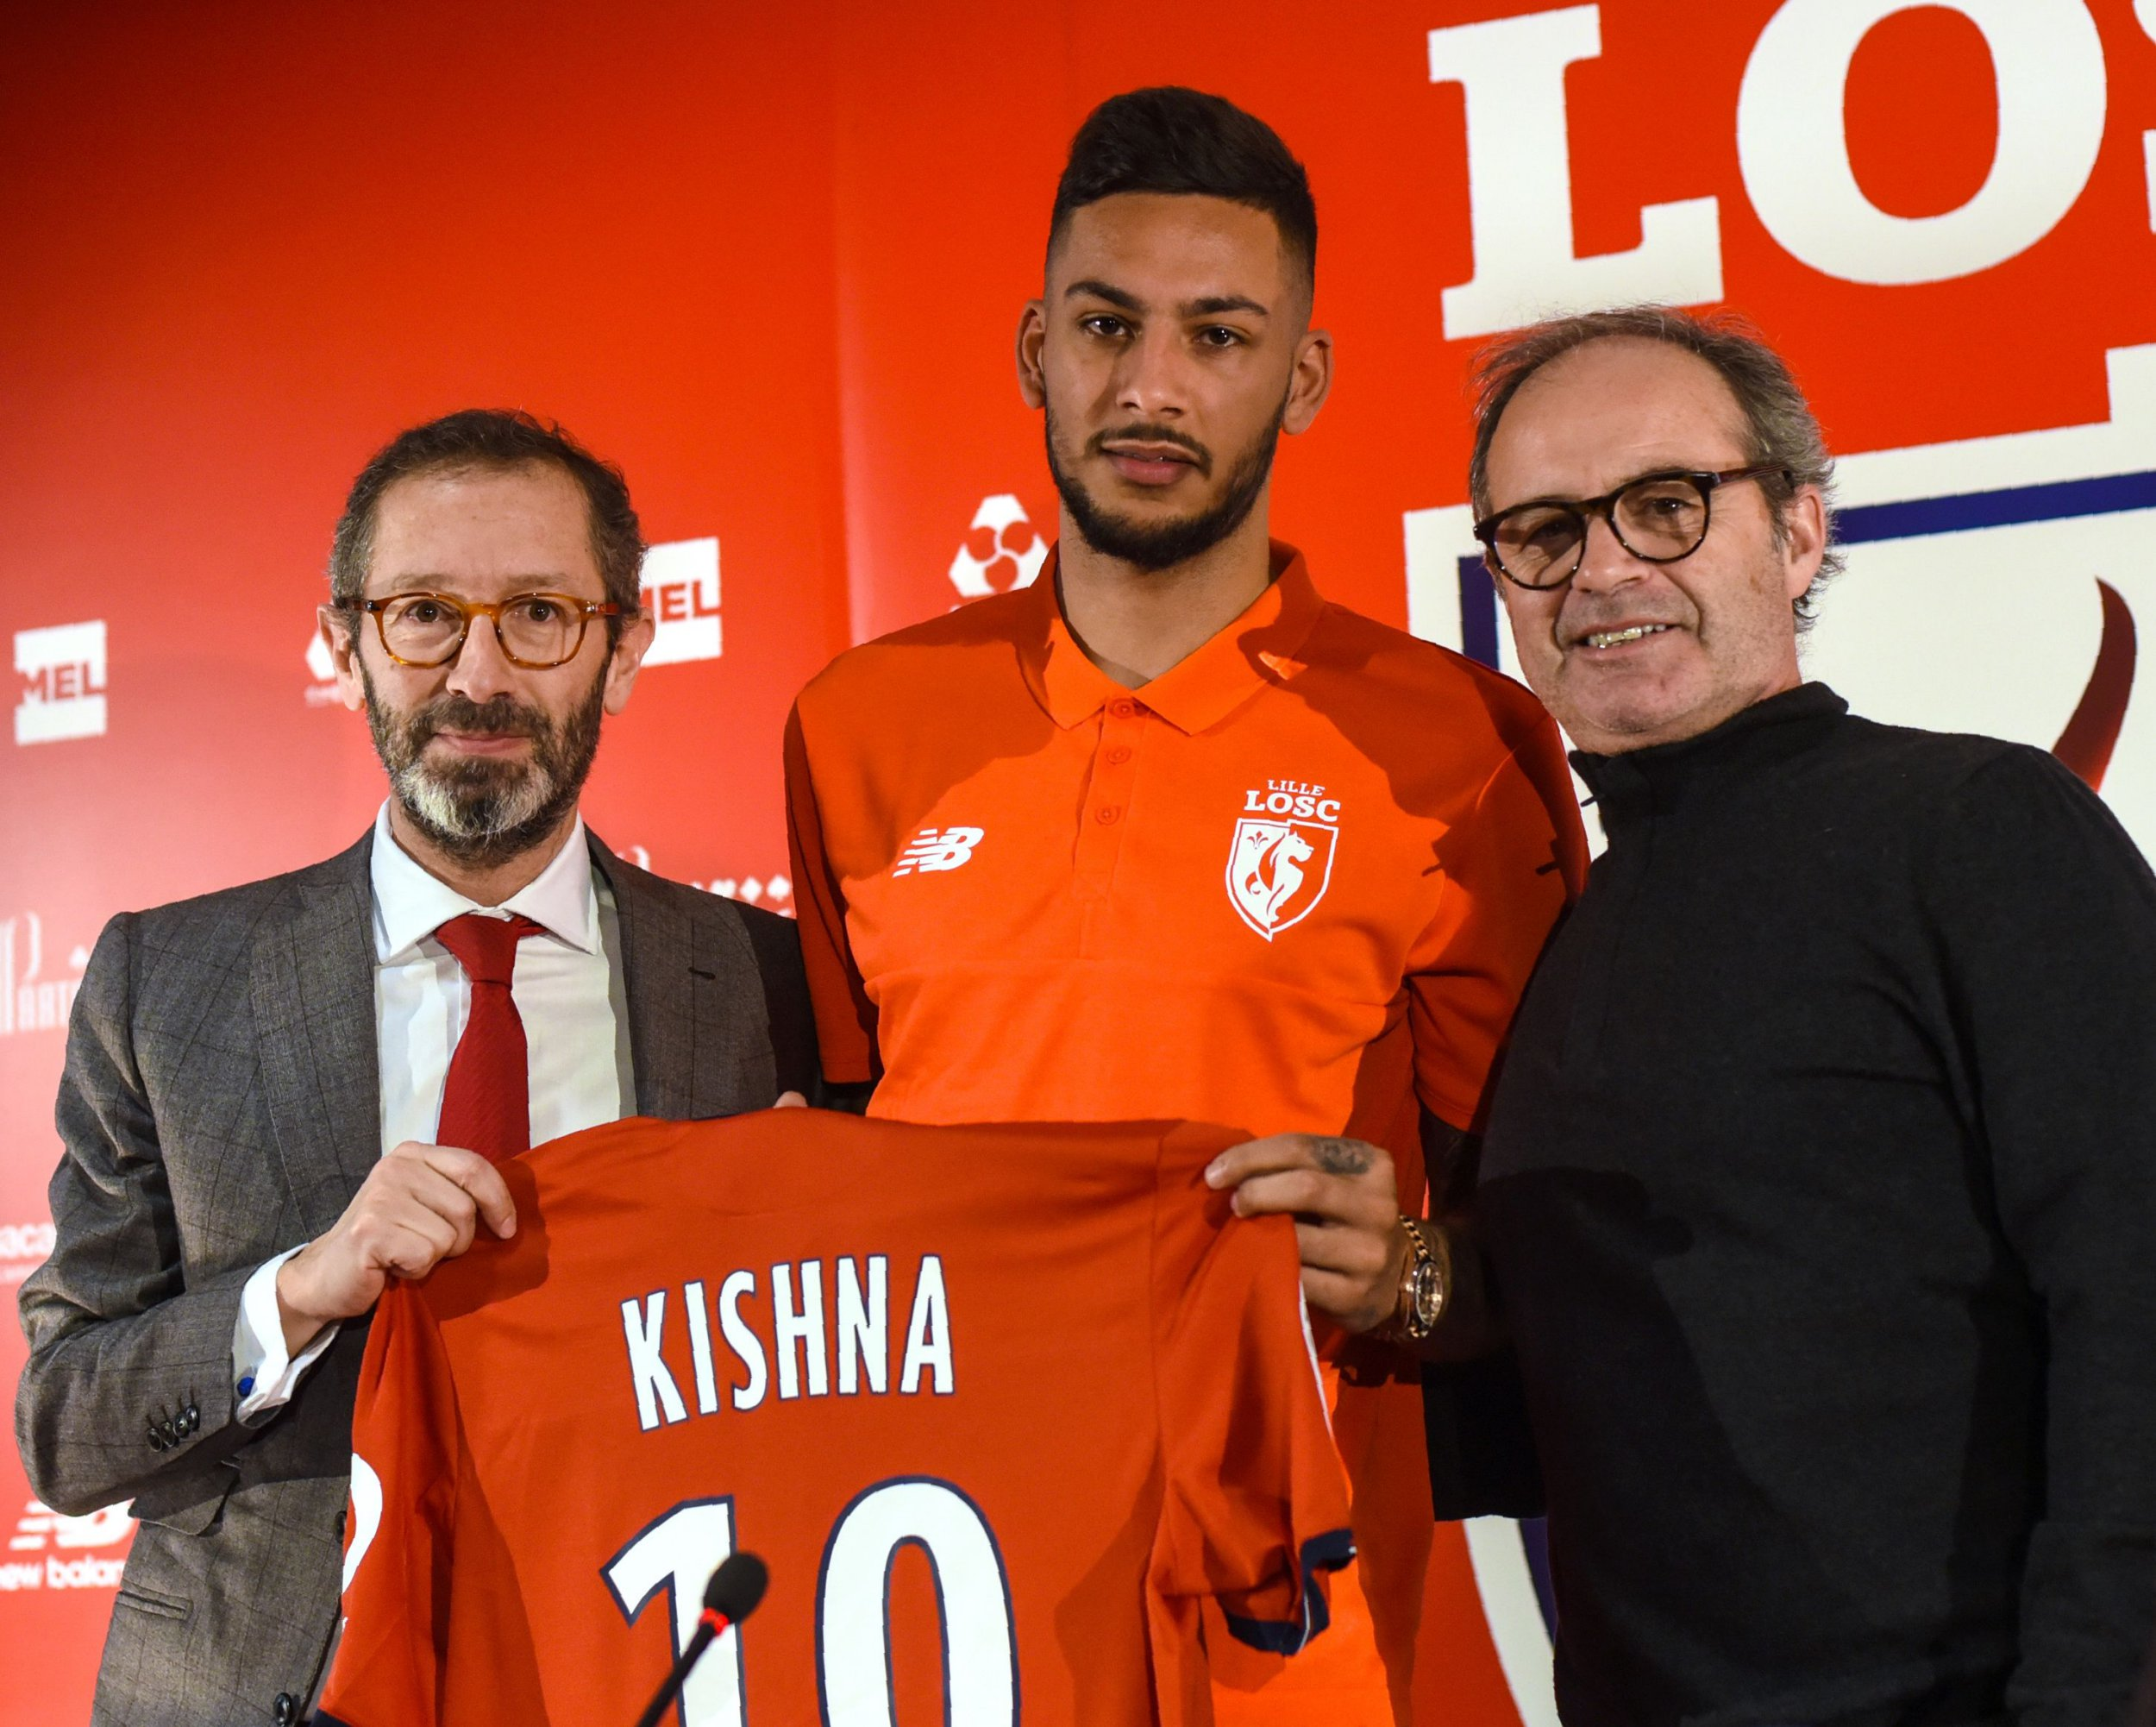 Lille's new player, Dutch forward Ricardo Kishna (C) holding his jersey bearing the number 10 poses for pictures with Lille's director Marc Ingla (L) and Lille's Portuguese head coach Luis Campos during a press conference at the training grounds of French first division L1 football club Lille OSC (LOSC) near Villeneuve-d'Ascq, northern France, on February 2, 2017. / AFP / DENIS CHARLET (Photo credit should read DENIS CHARLET/AFP/Getty Images)